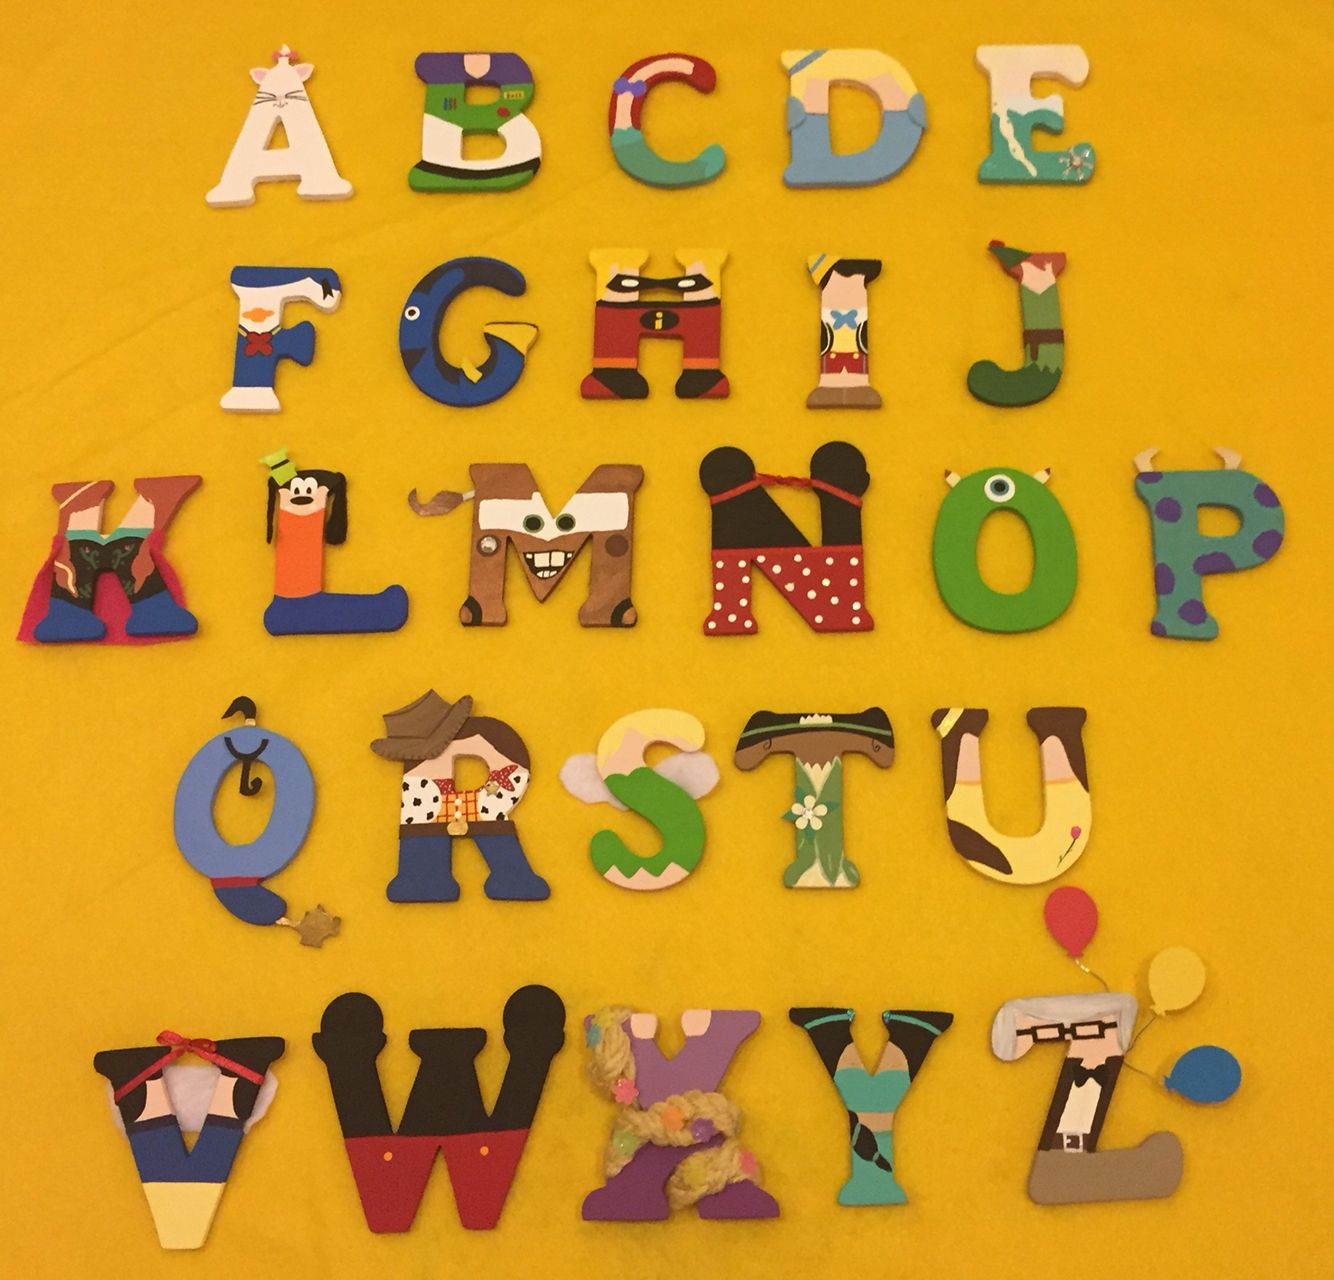 The Alphabet Made Up Of Different Disney Characters Great